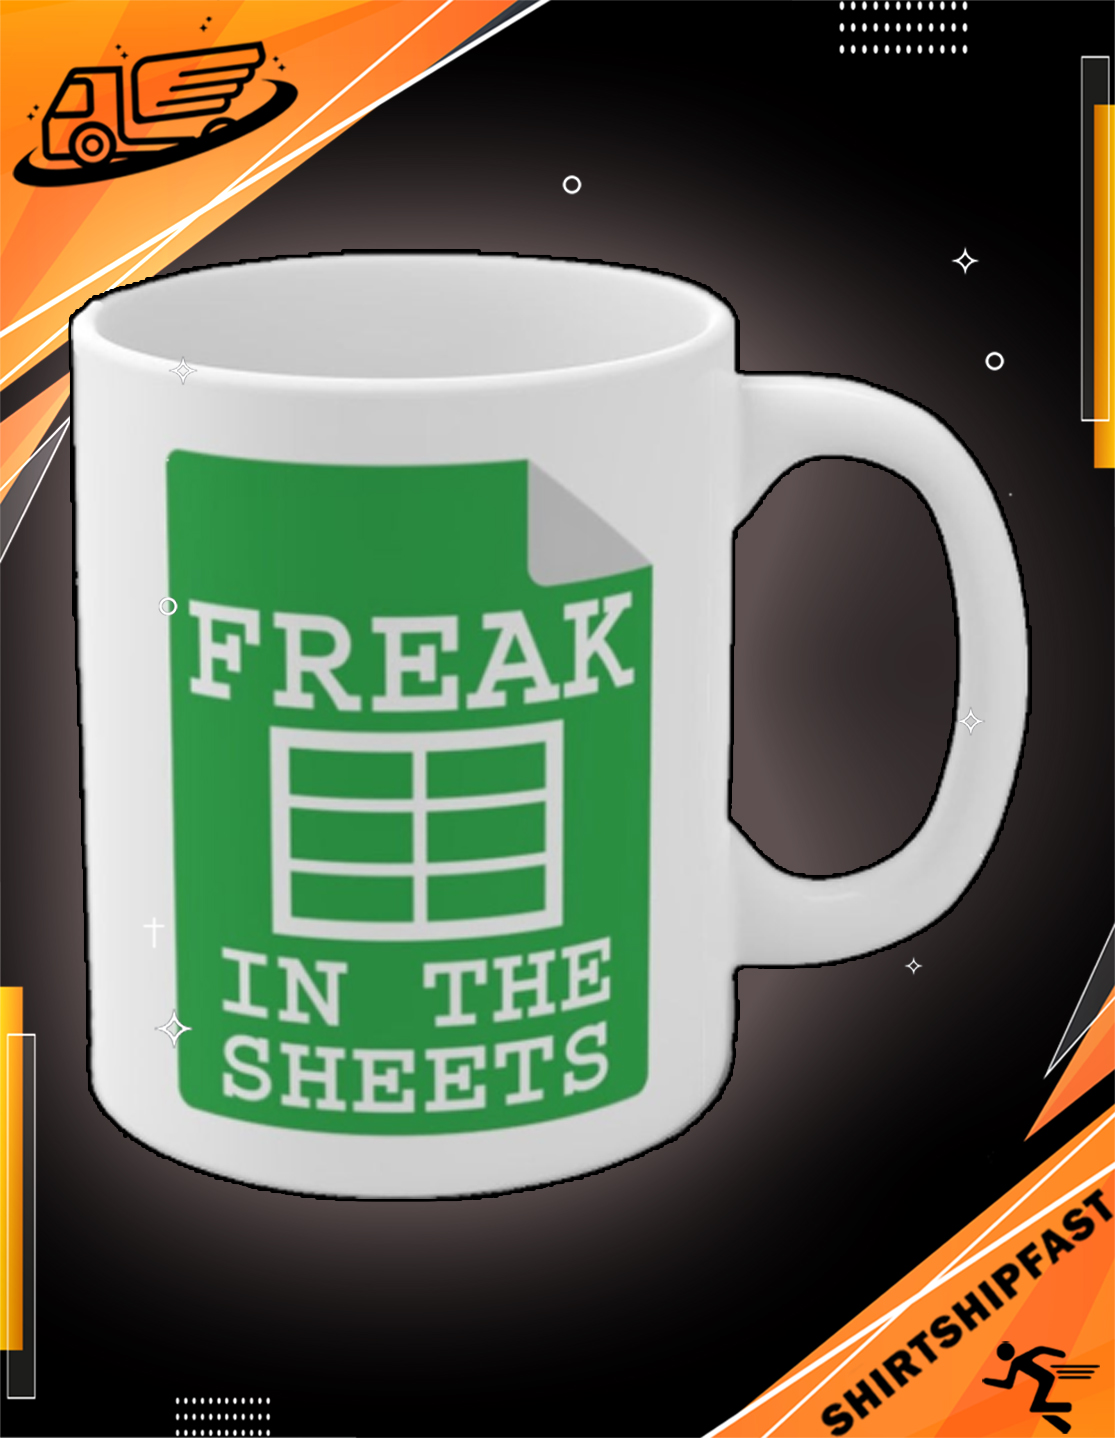 Freak in the sheets mug - Picture 3